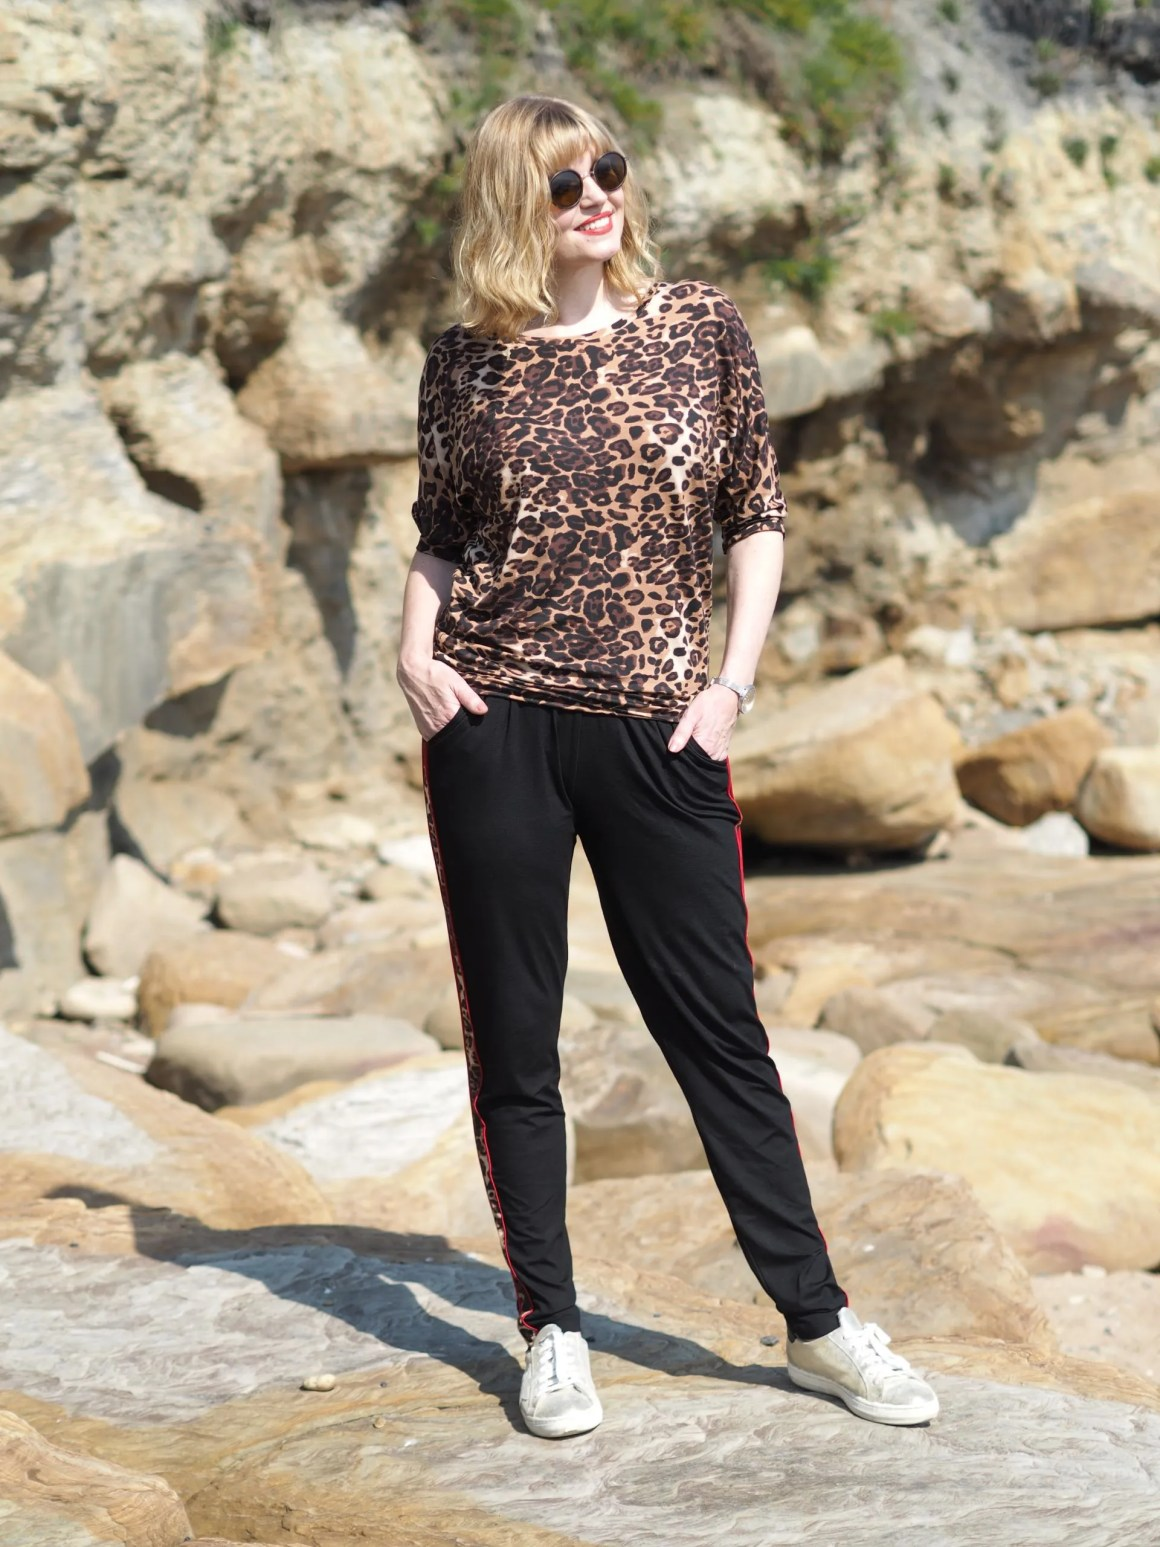 Leopard print yoga clothing